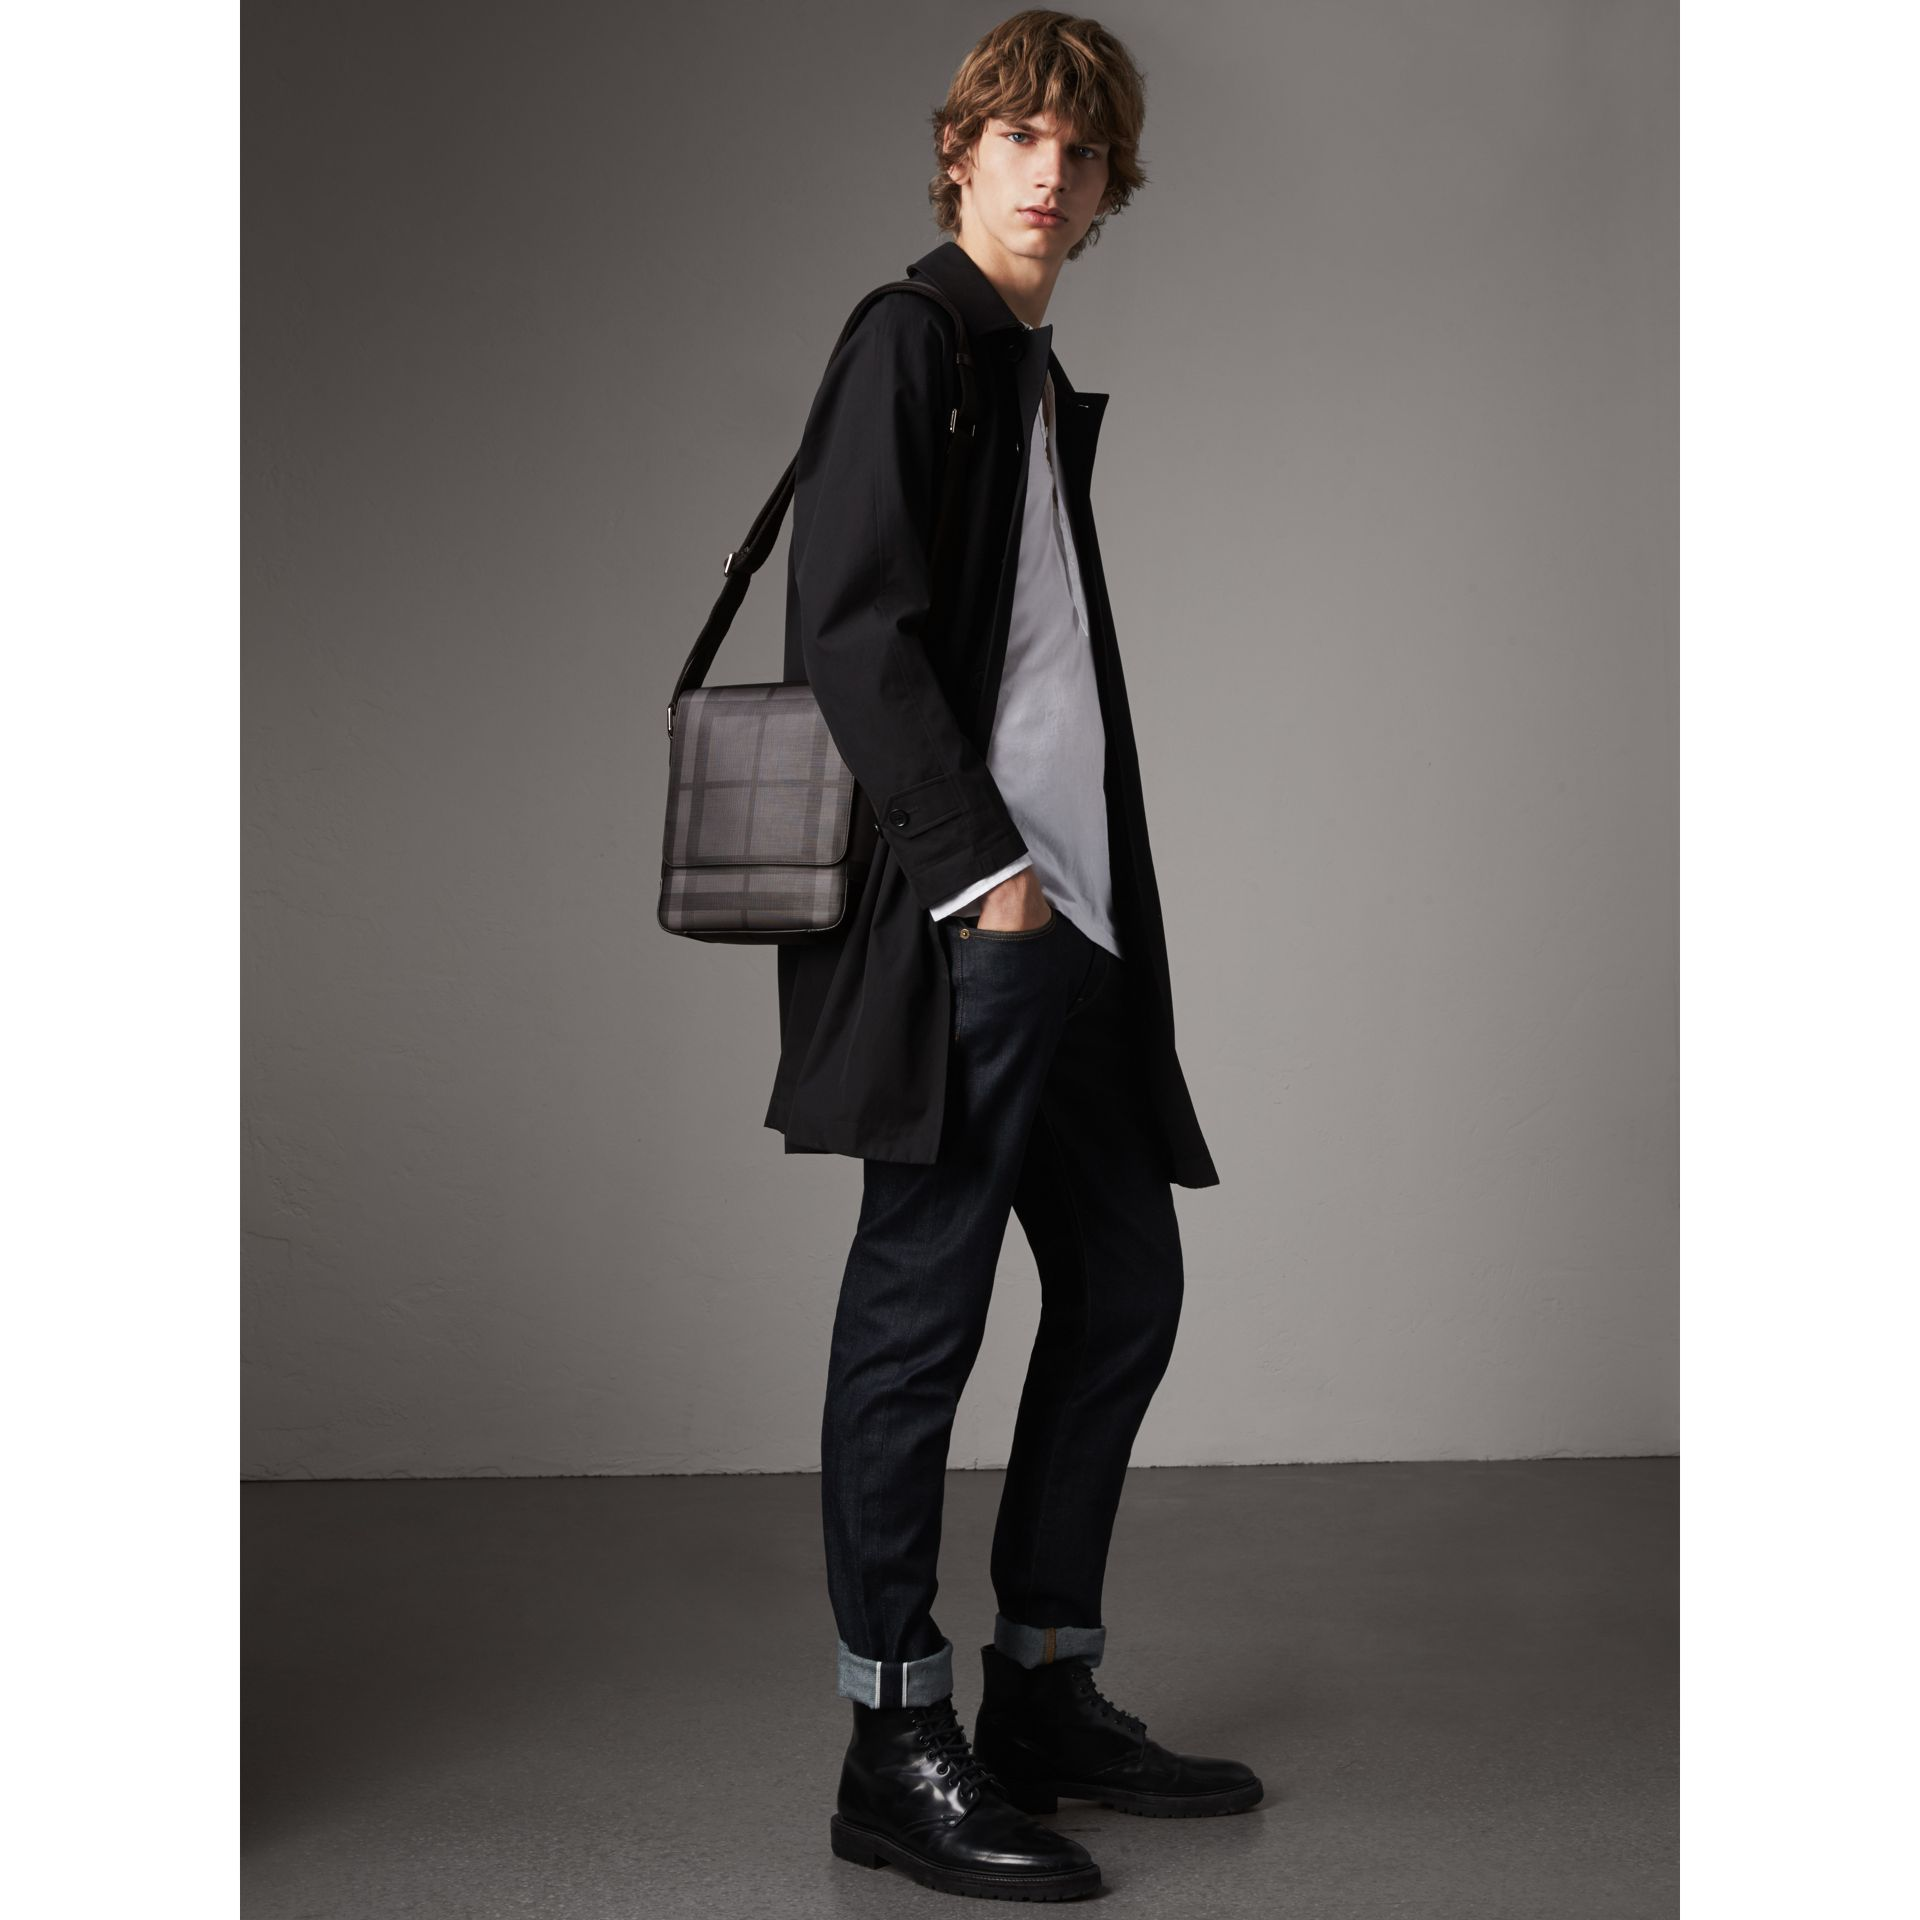 Sac à bandoulière avec motif London check (Anthracite/noir) - Homme | Burberry - photo de la galerie 2